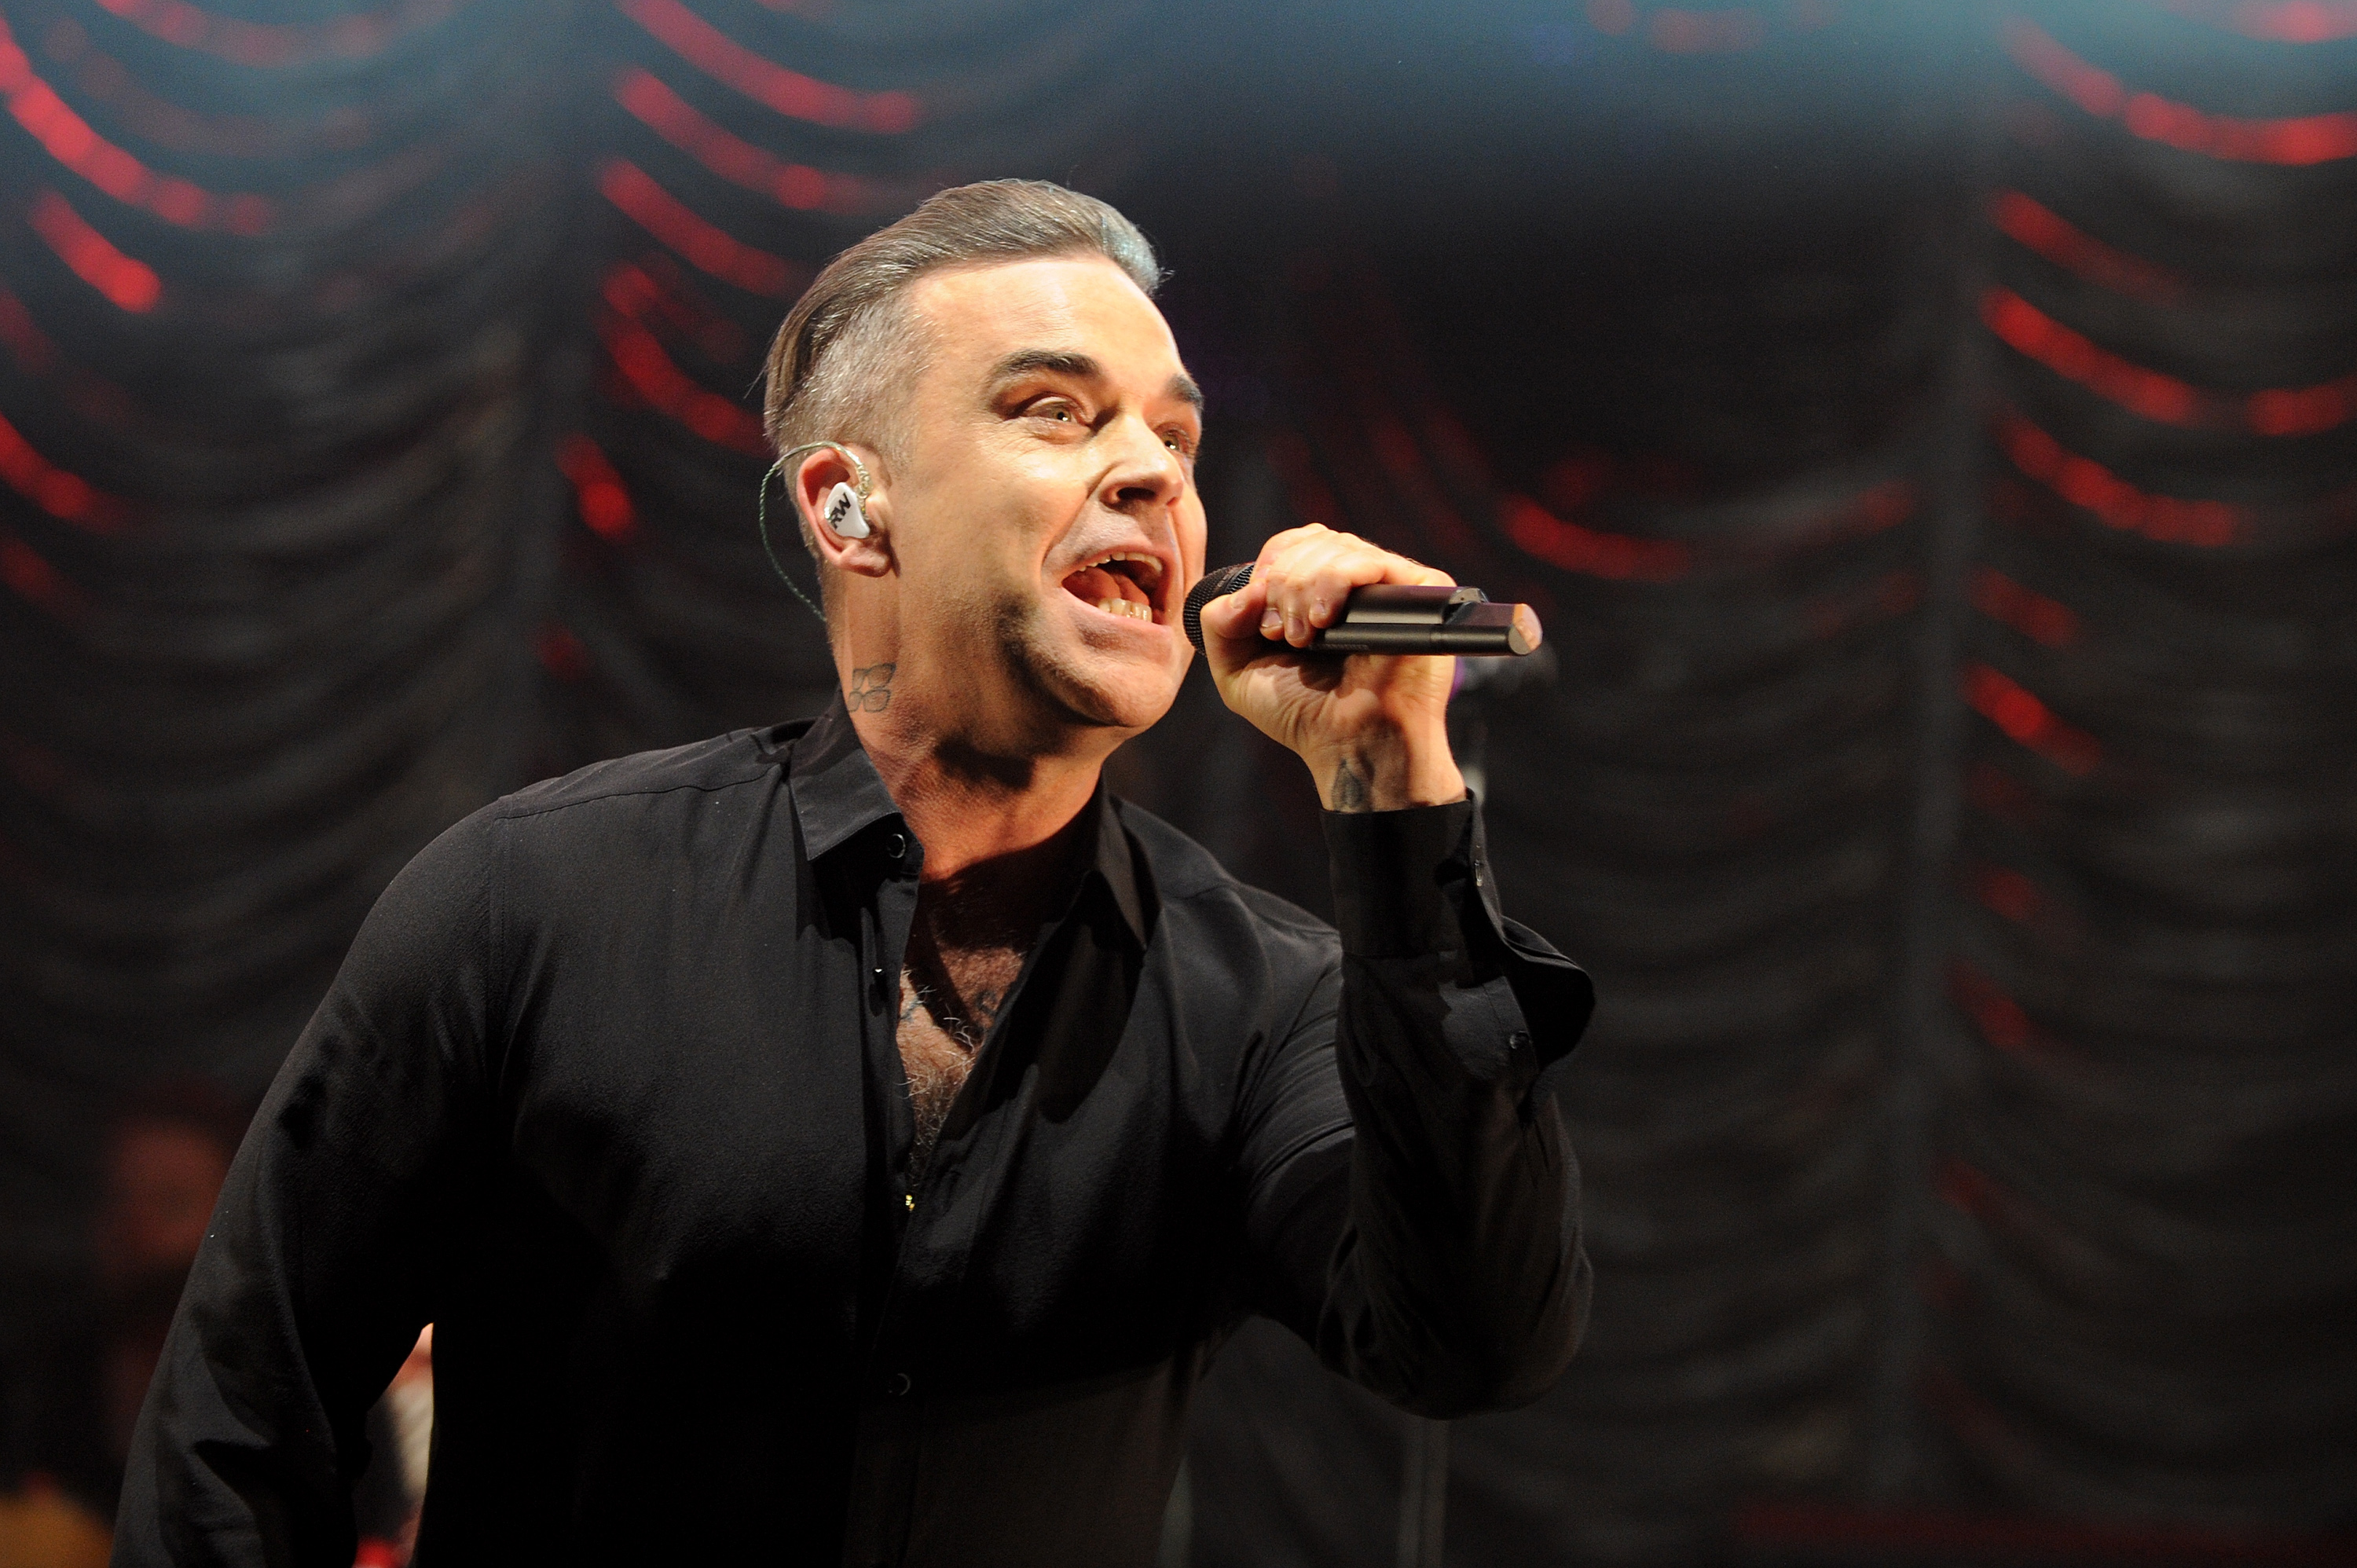 Robbie Williams to perform at FIFA World Cup opening ceremony